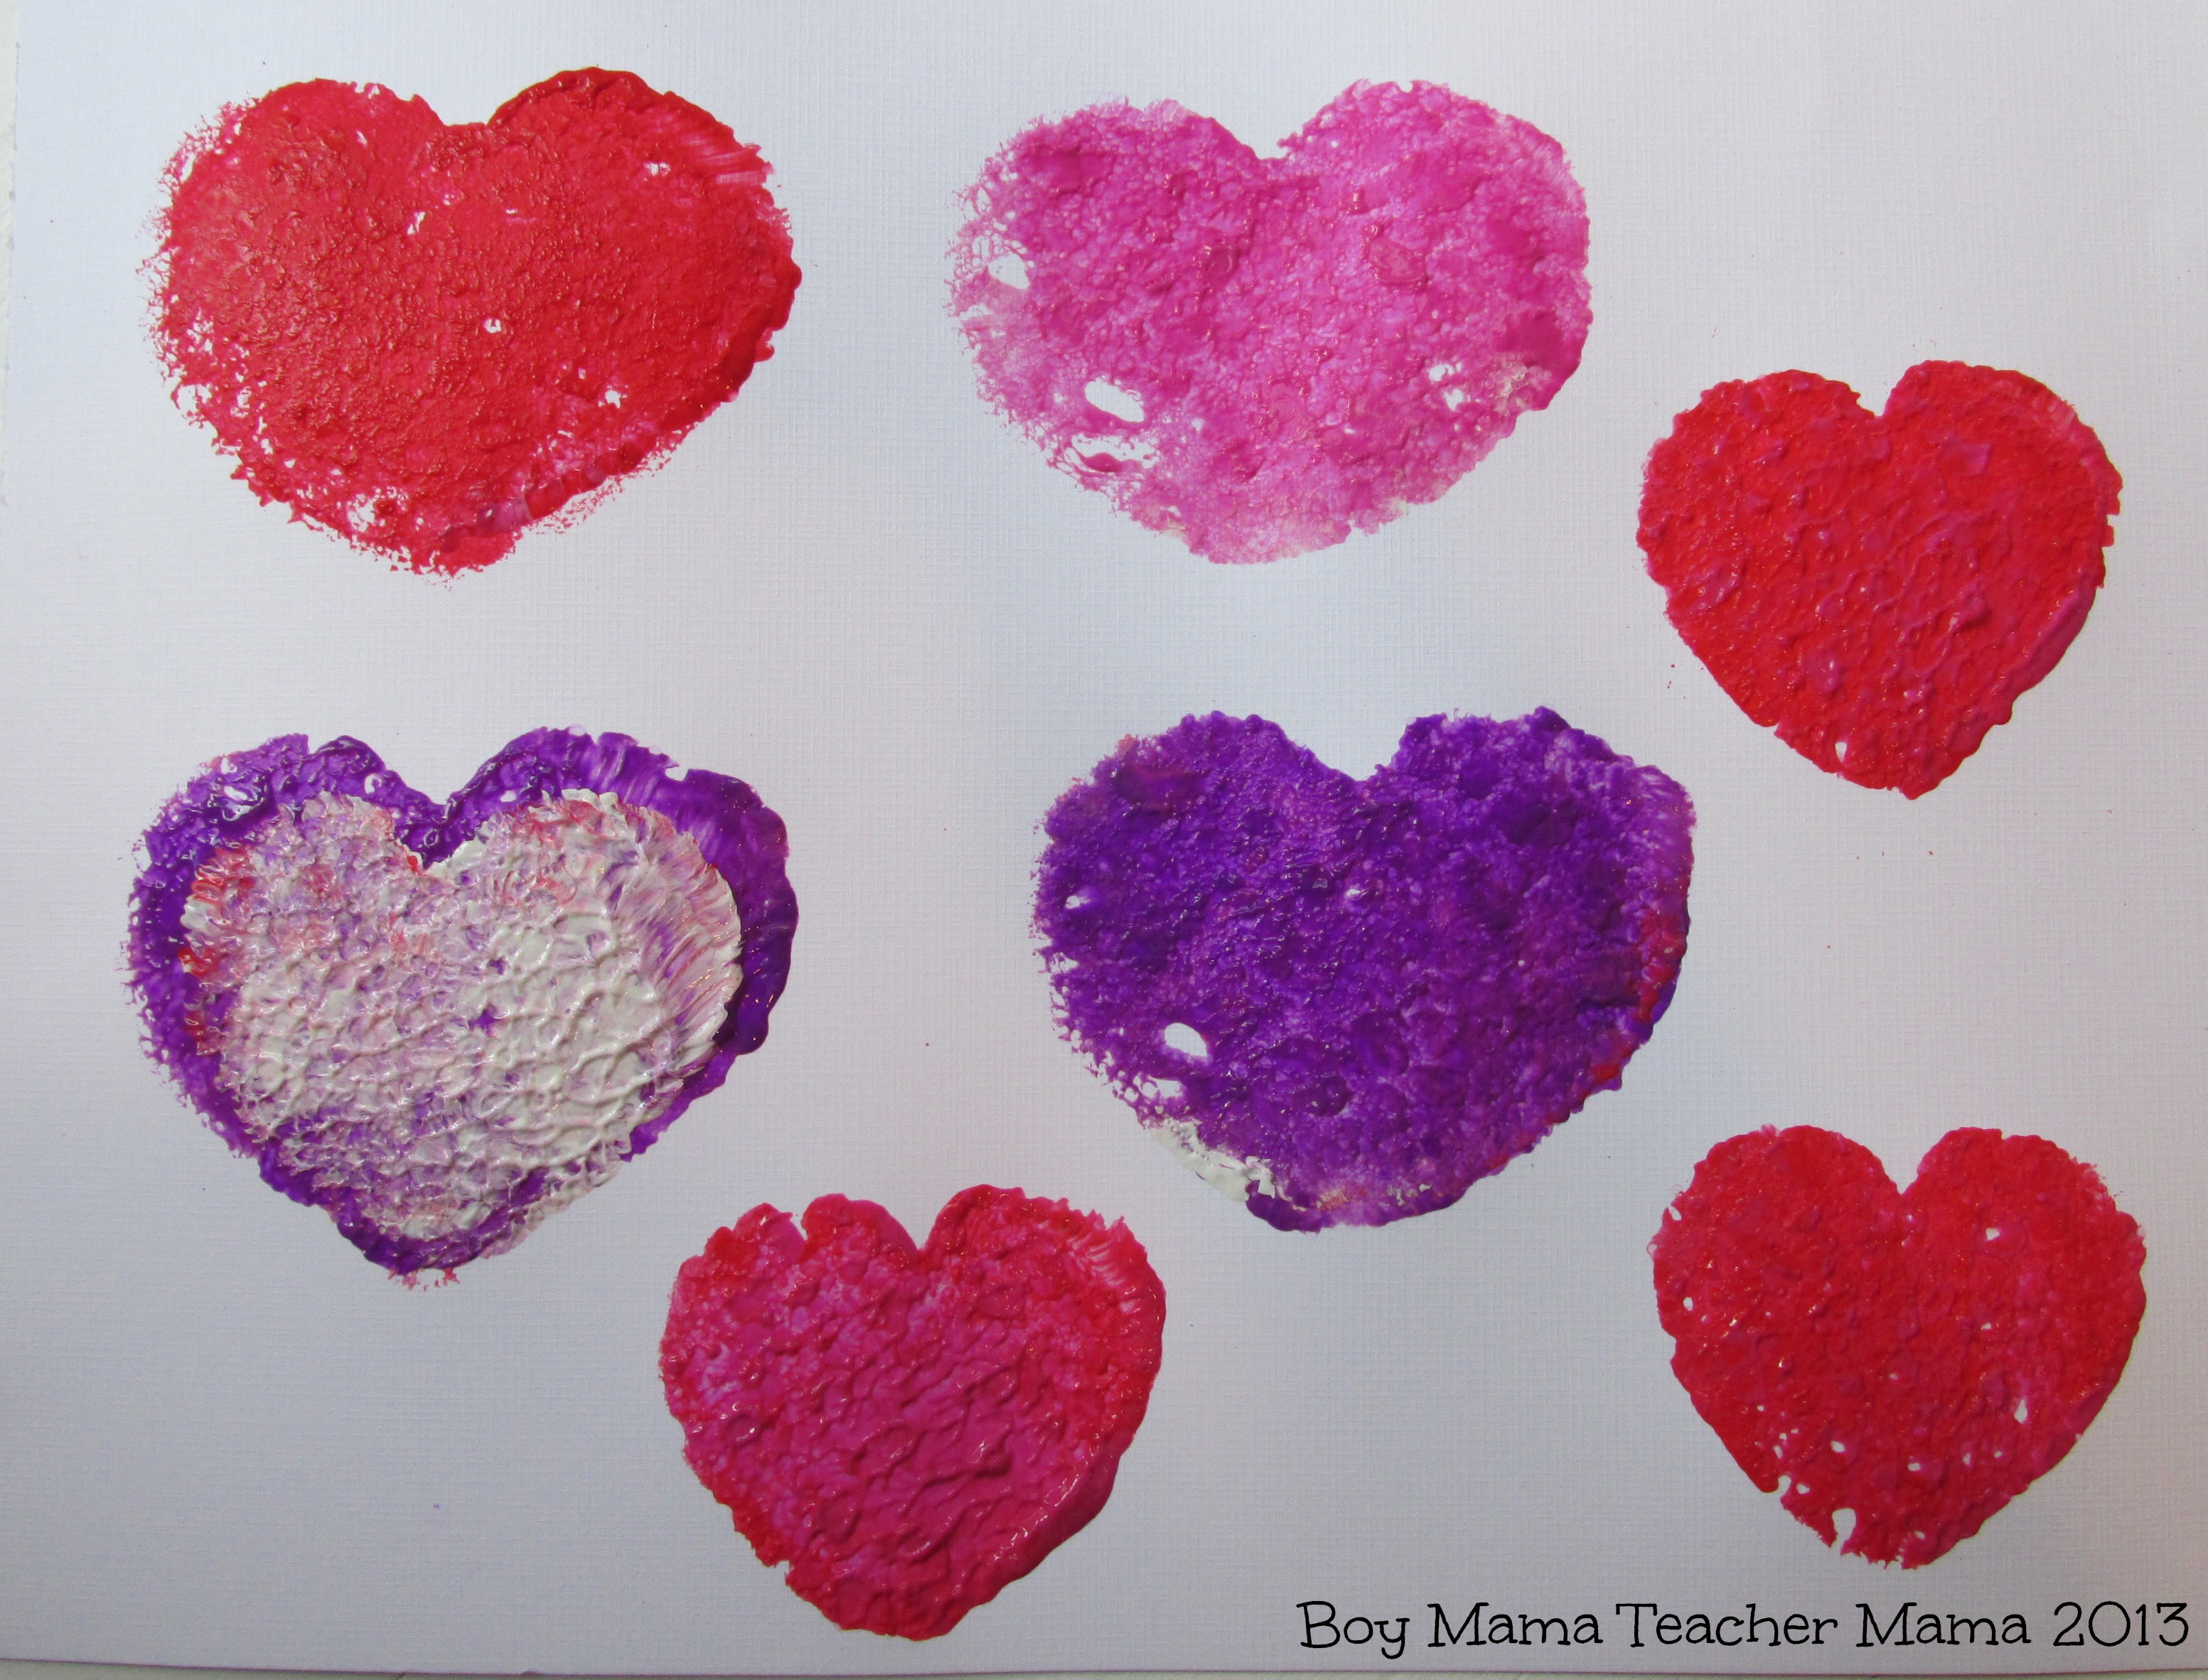 Boy Mama Heart Sponge Painting Without The Mess Boy